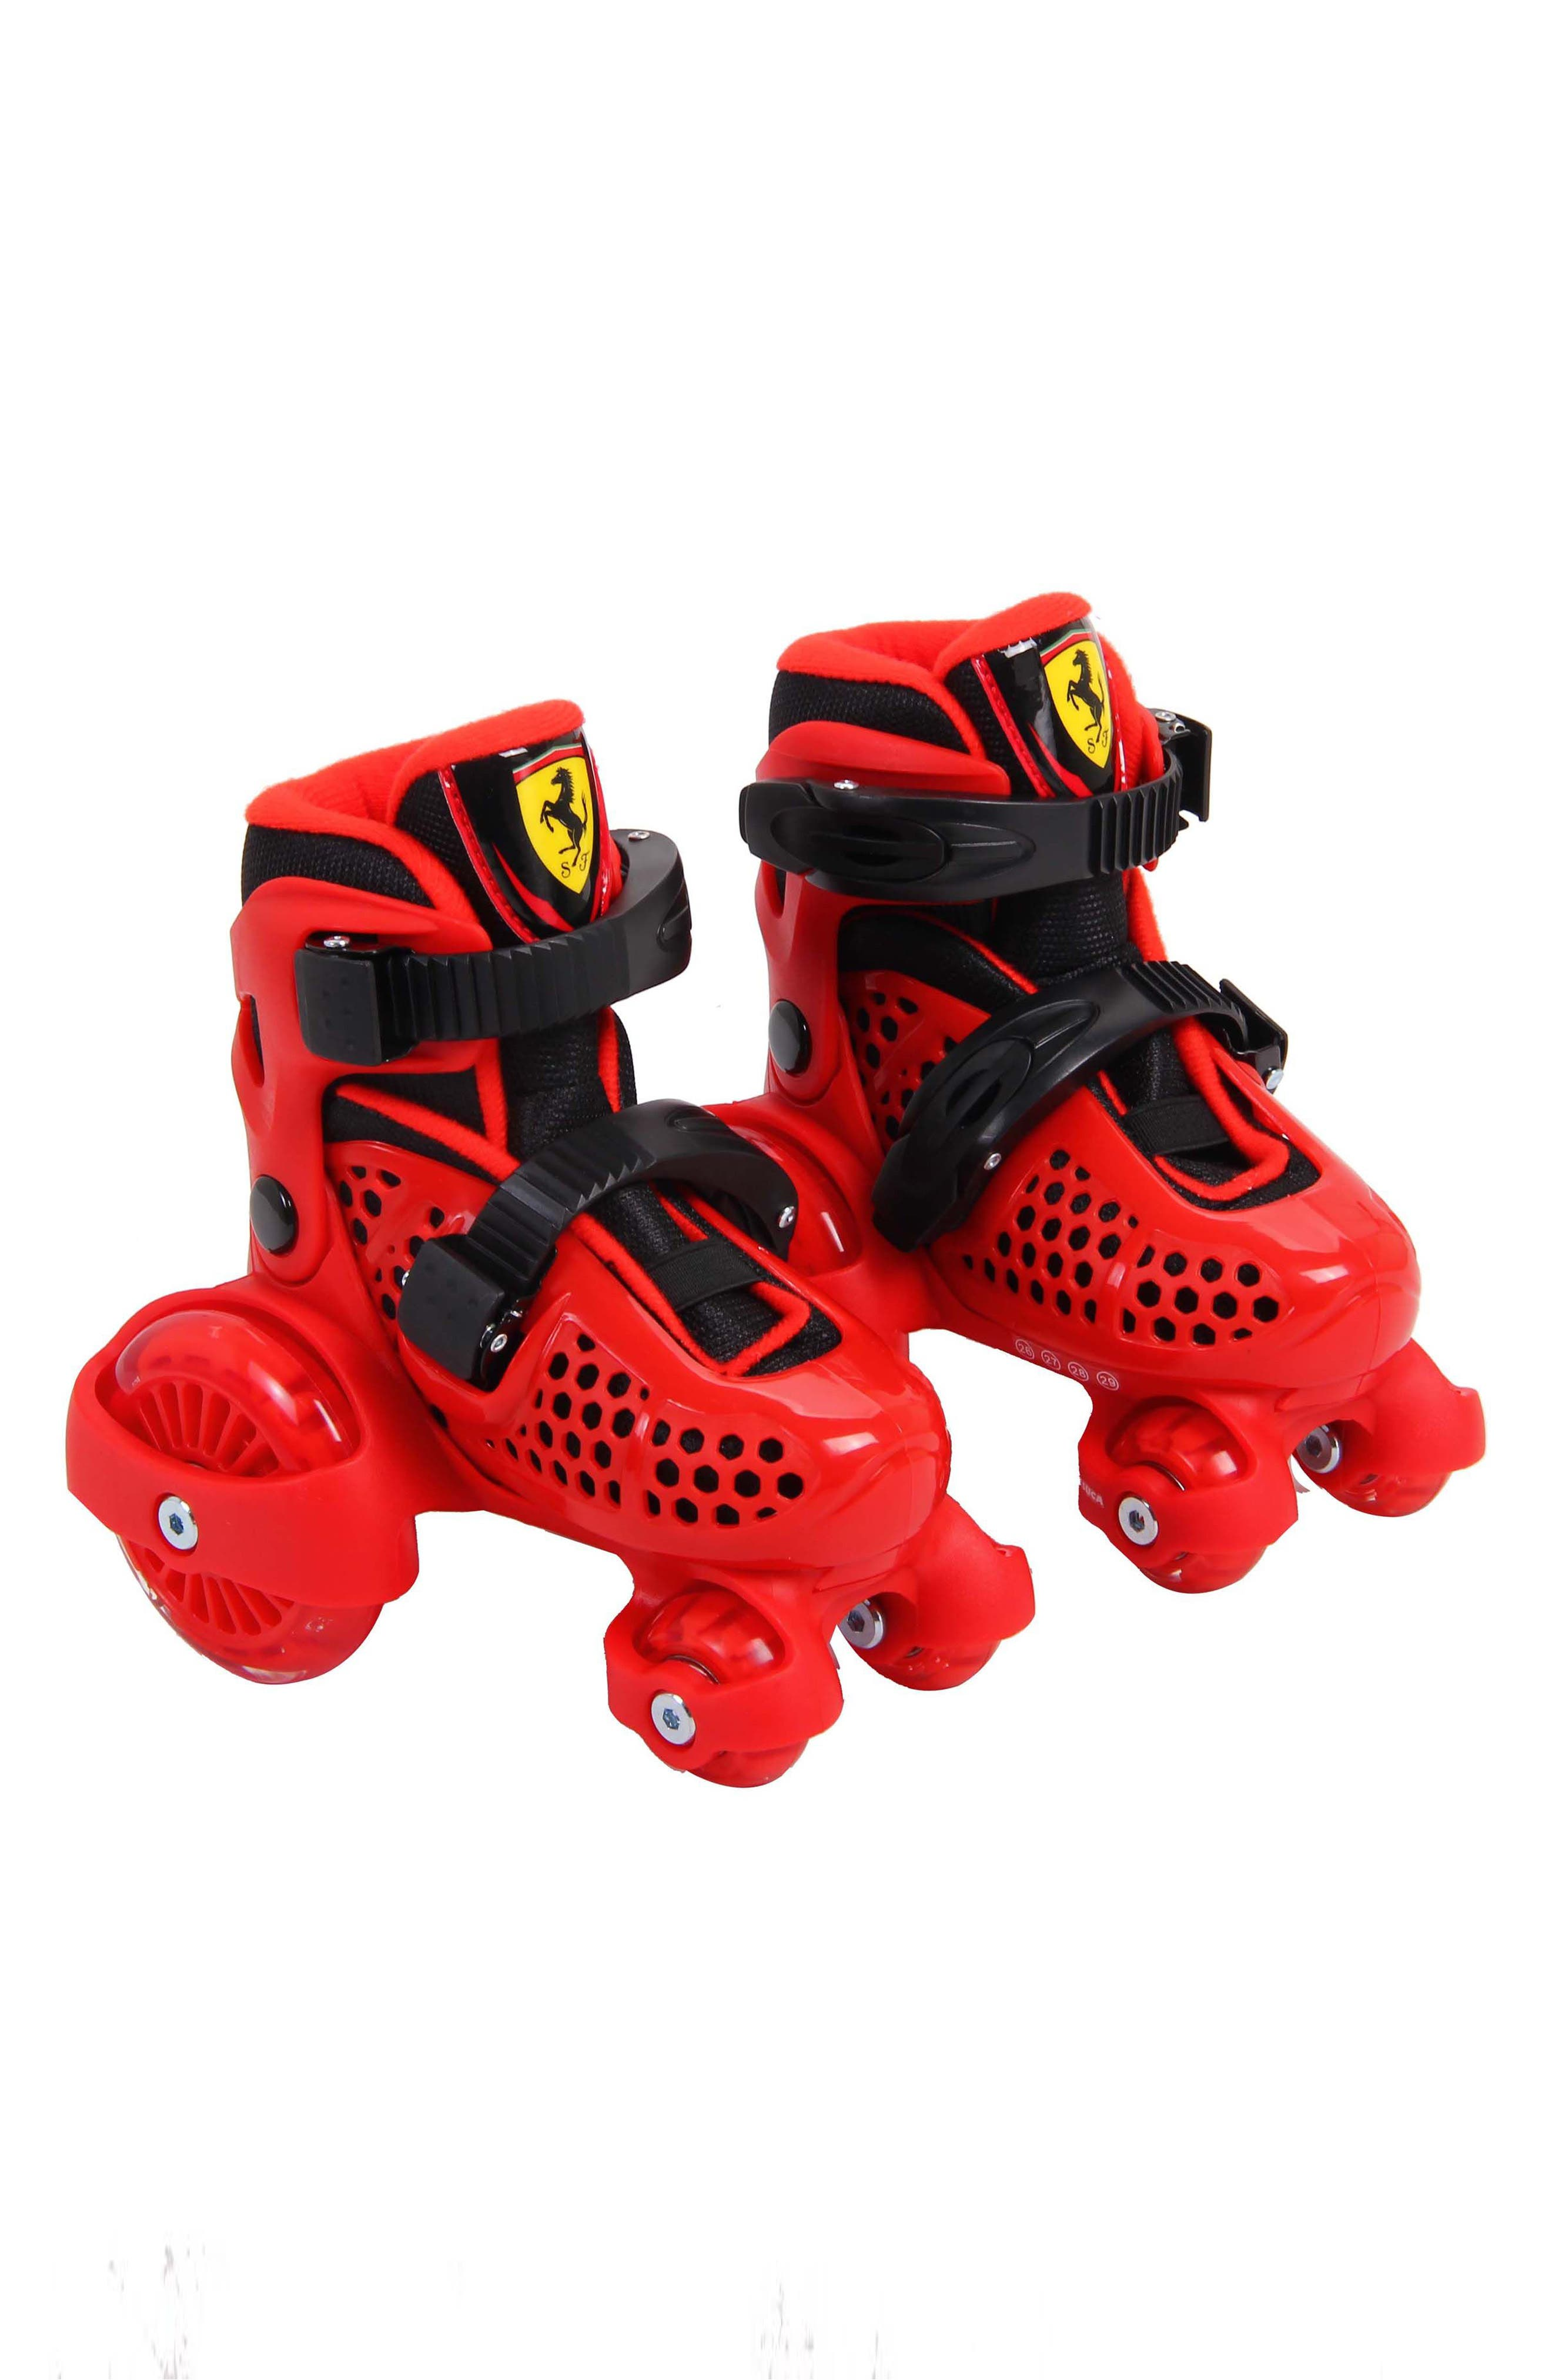 My First Skate Rollerskate & Protective Gear Set,                             Main thumbnail 1, color,                             600